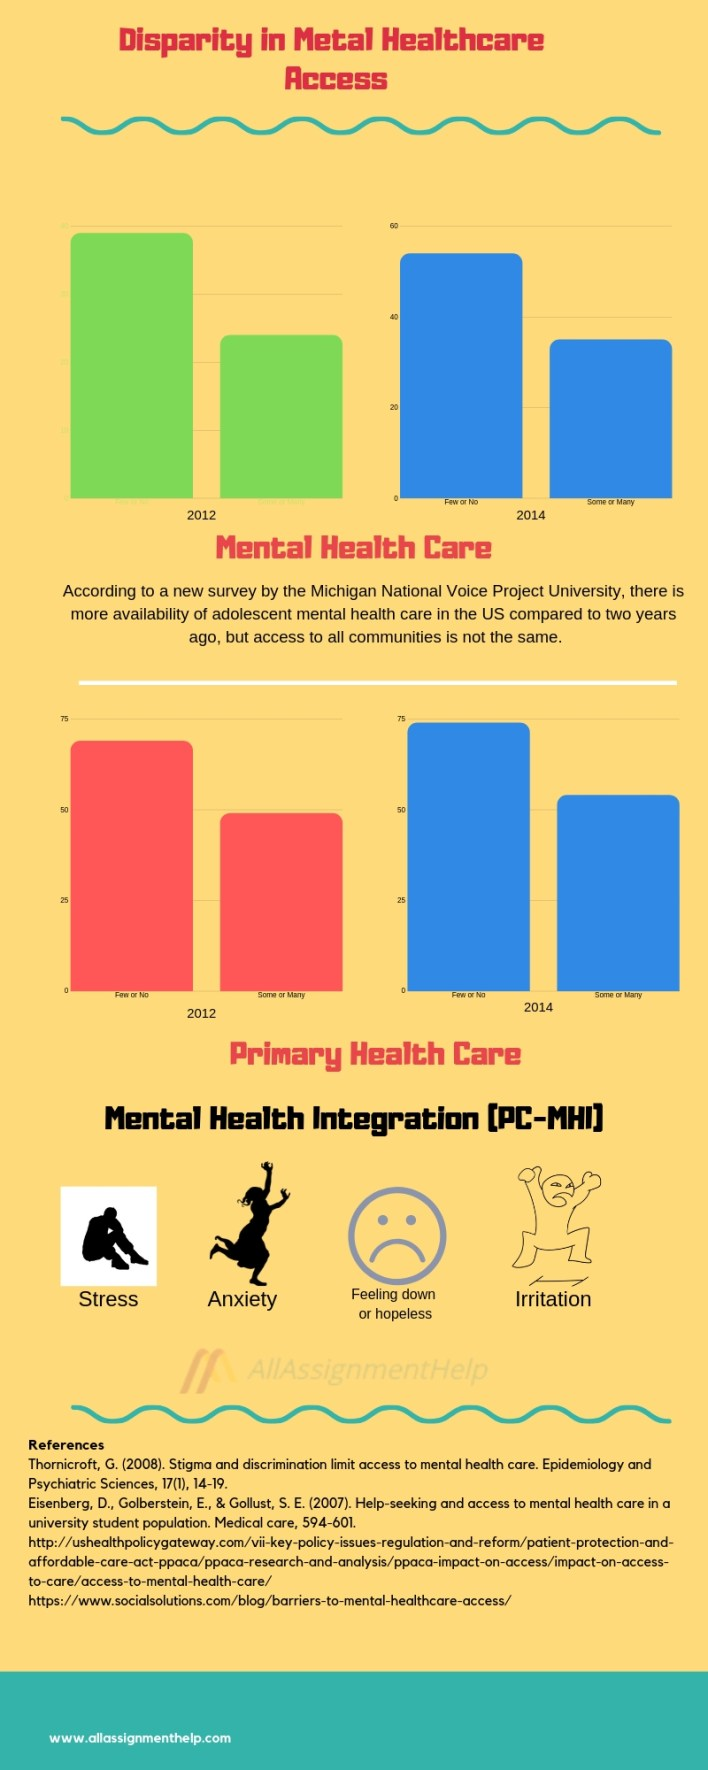 3. Disparity in Mental Healthcare Access